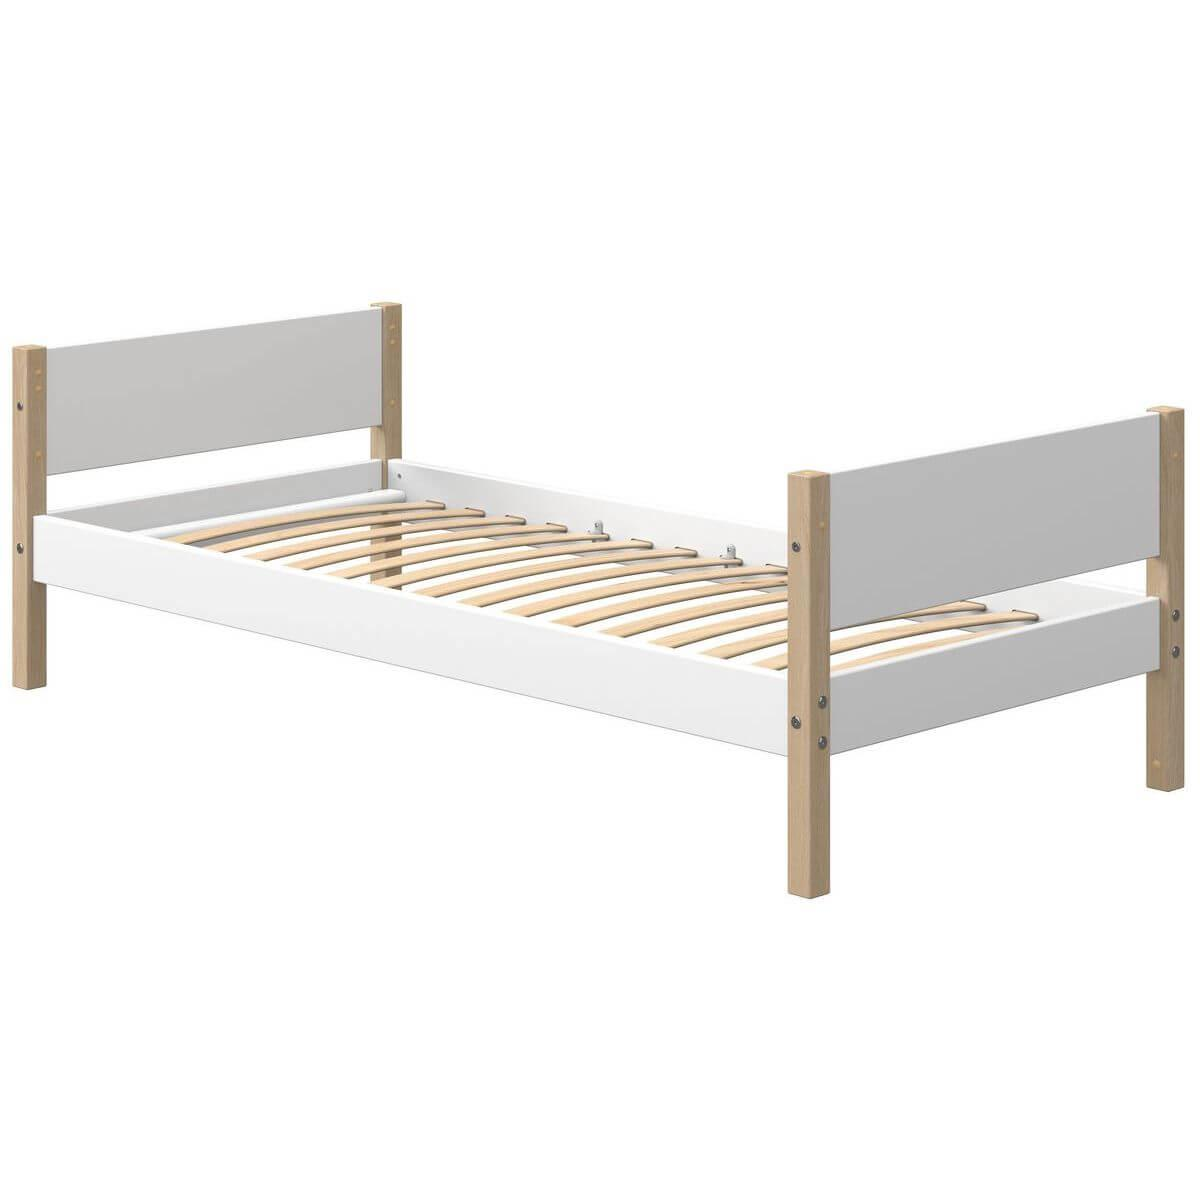 Cama individual 90x190cm NOR Flexa roble-blanco